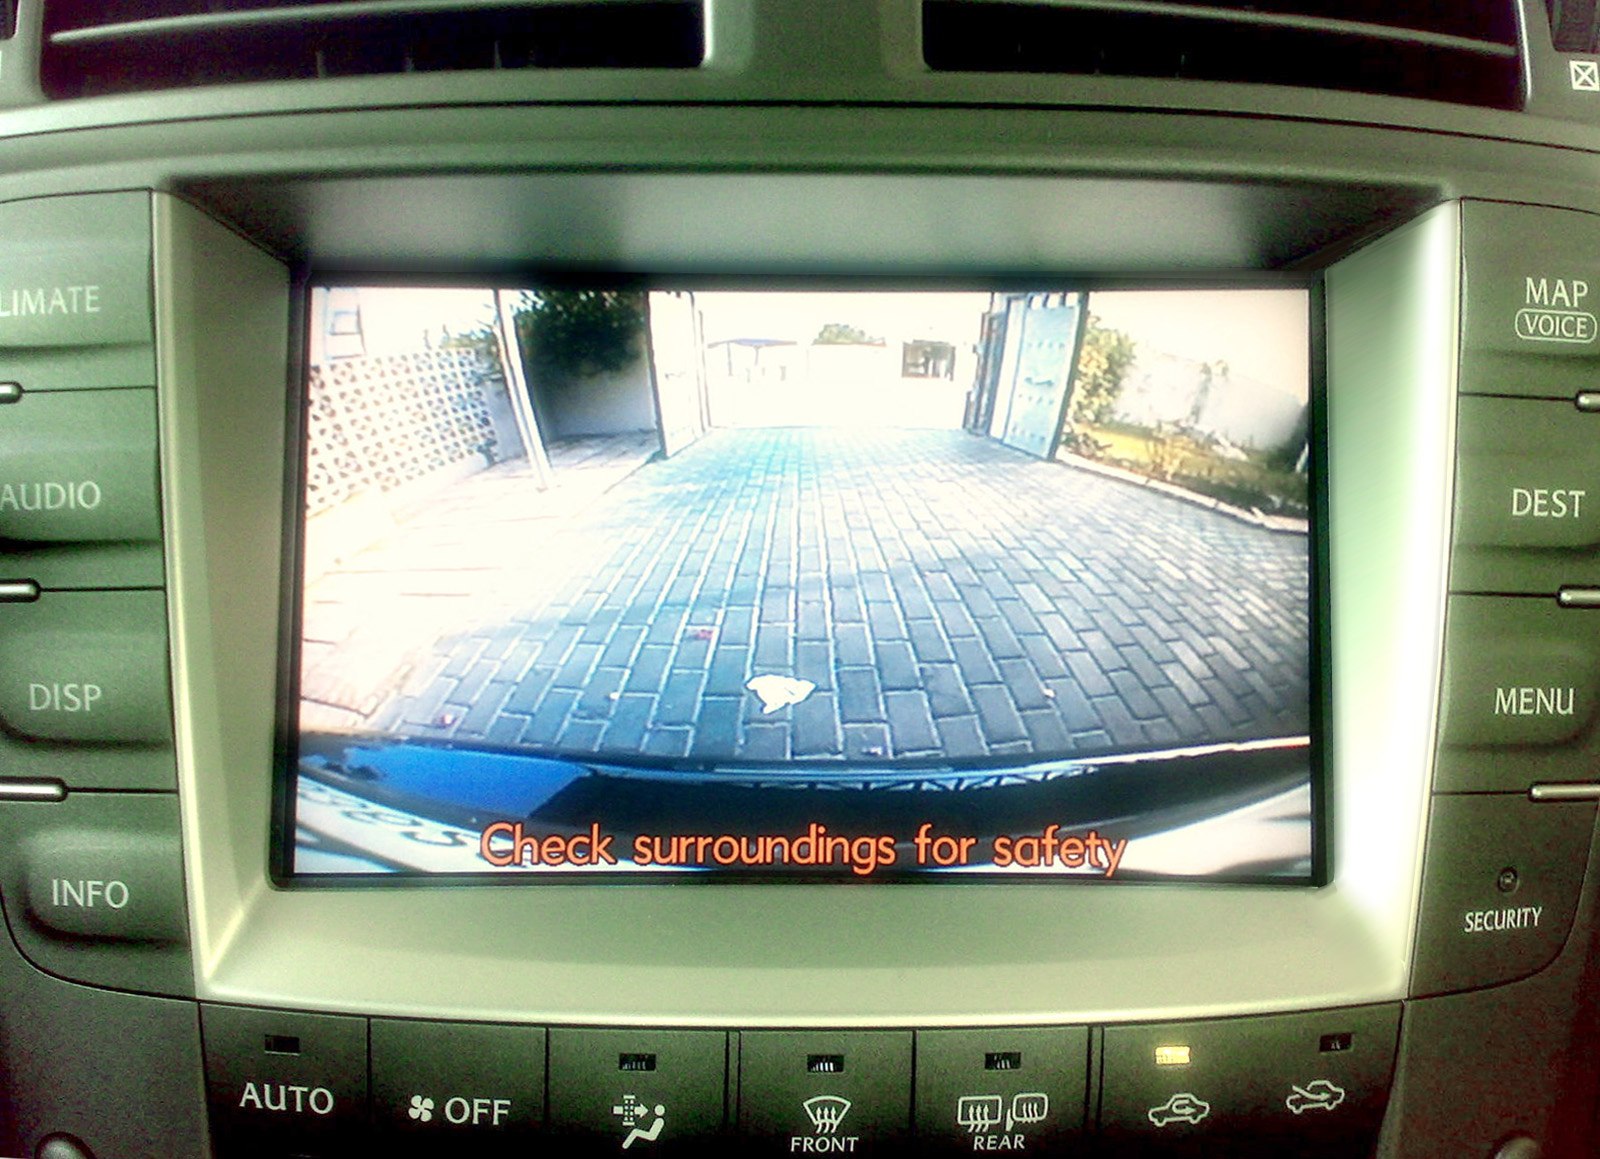 an image of backup%20camera Lexus backup camera1.jpg